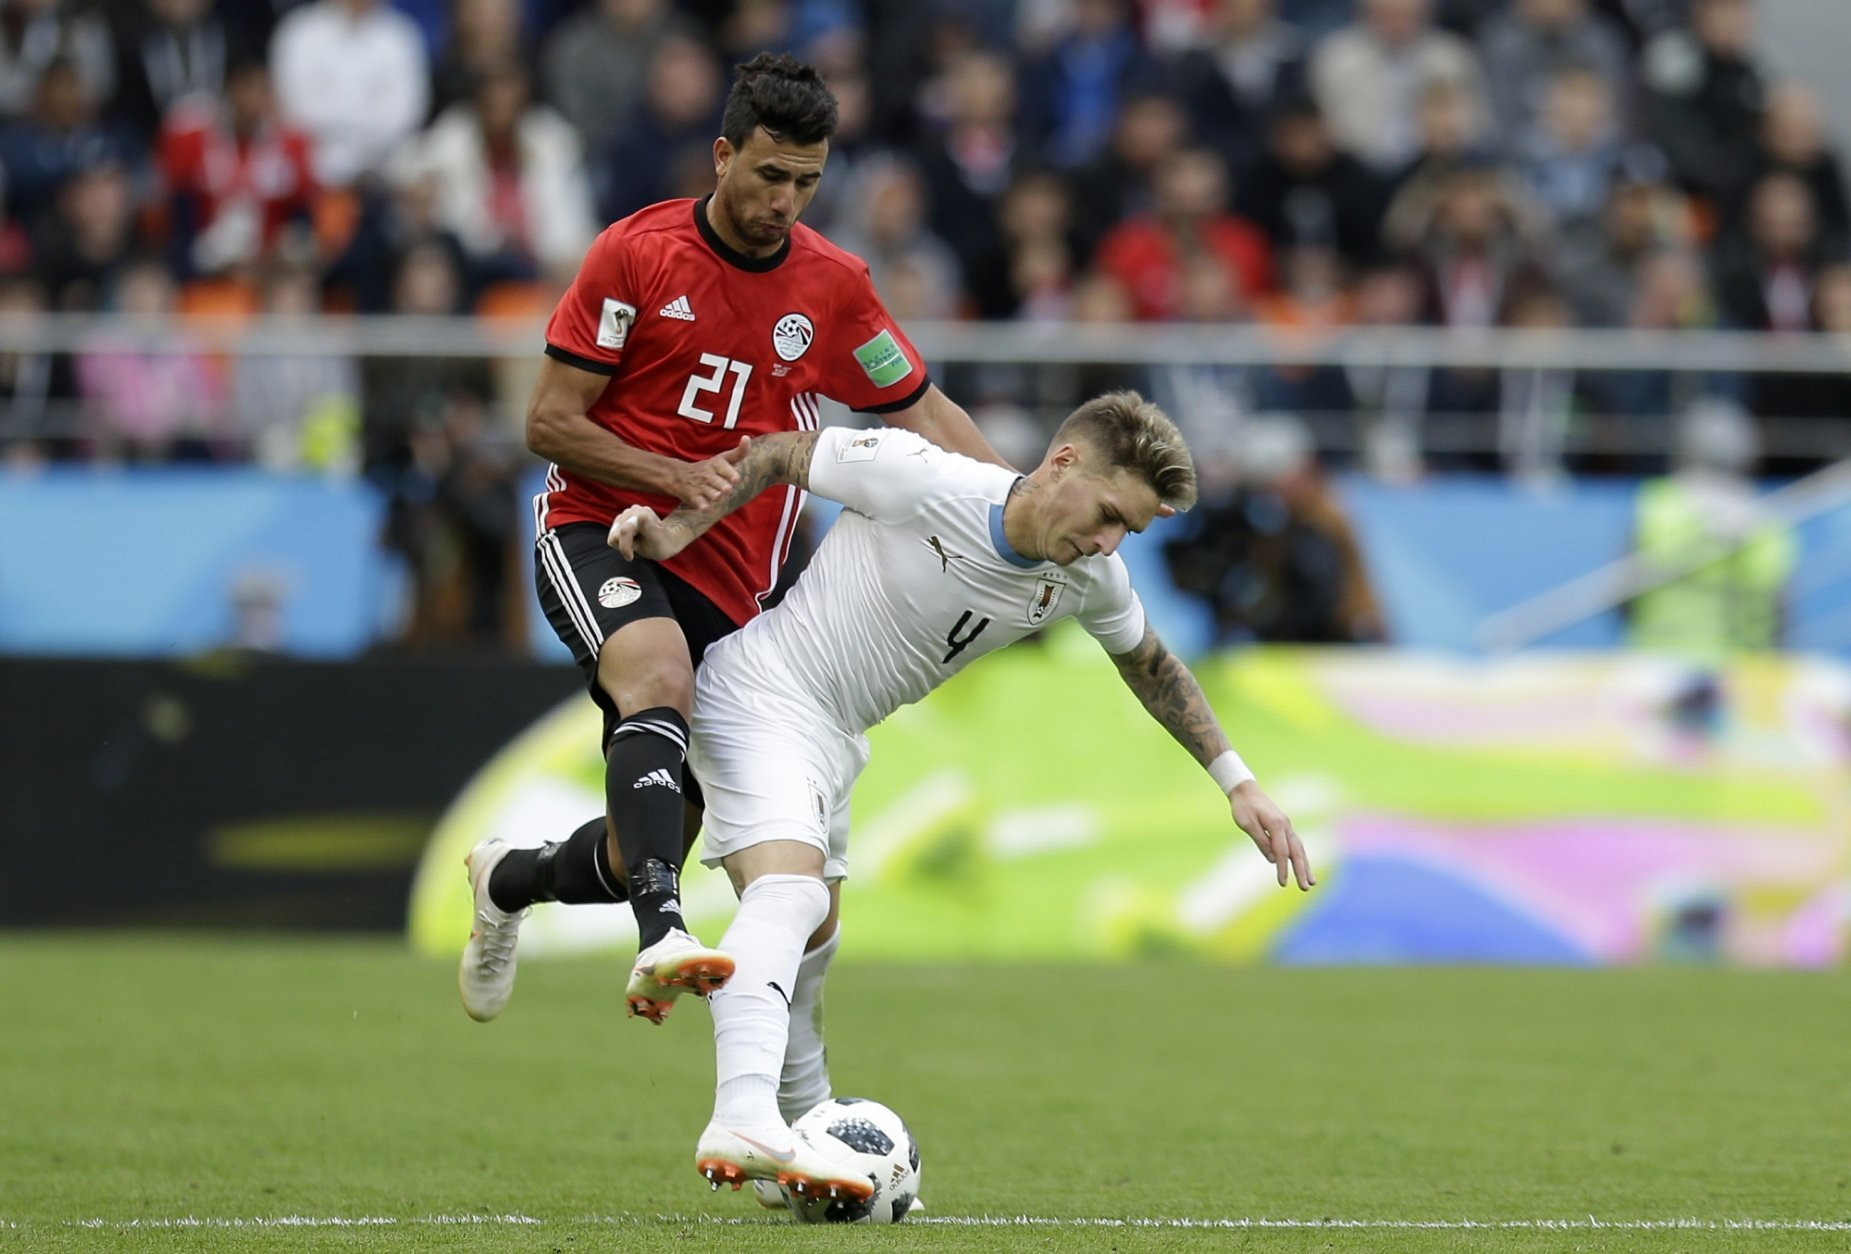 Uruguay's Guillermo Varela, right, challenges for the ball with Egypt's Trezeguet during the group A match between Egypt and Uruguay at the 2018 soccer World Cup in the Yekaterinburg Arena in Yekaterinburg, Russia, Friday, June 15, 2018. (AP Photo/Natacha Pisarenko)